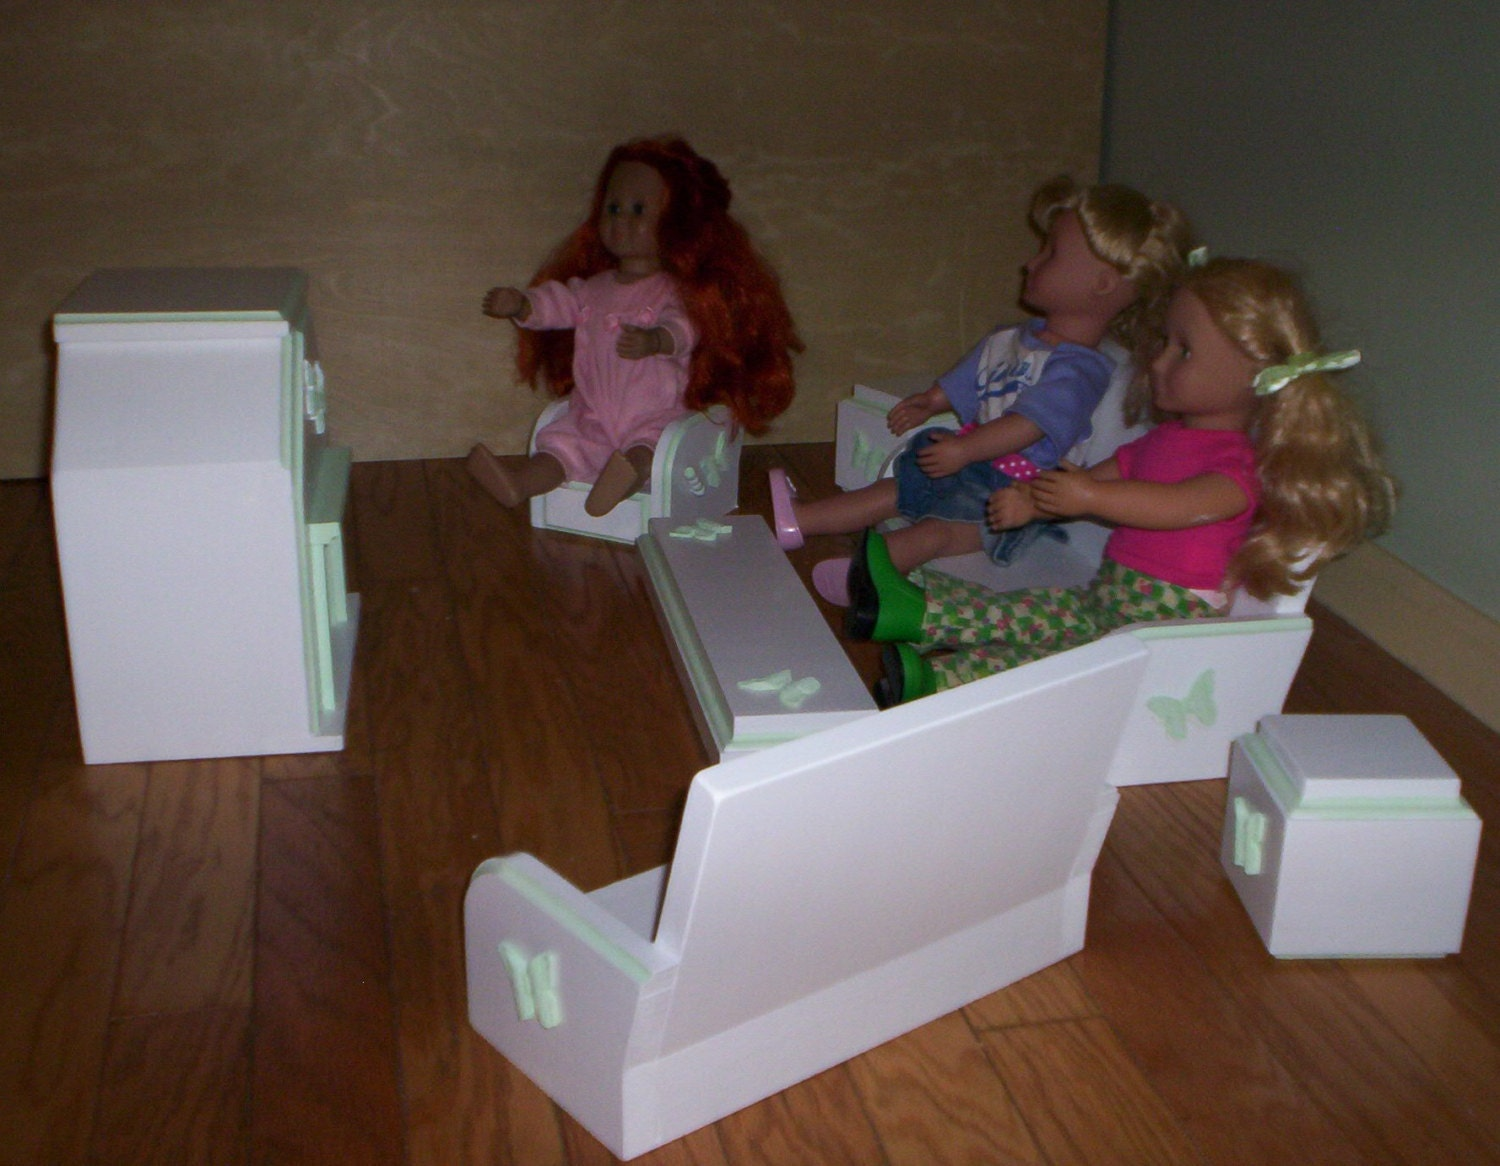 To living room set doll furniture handcrafted for american girl